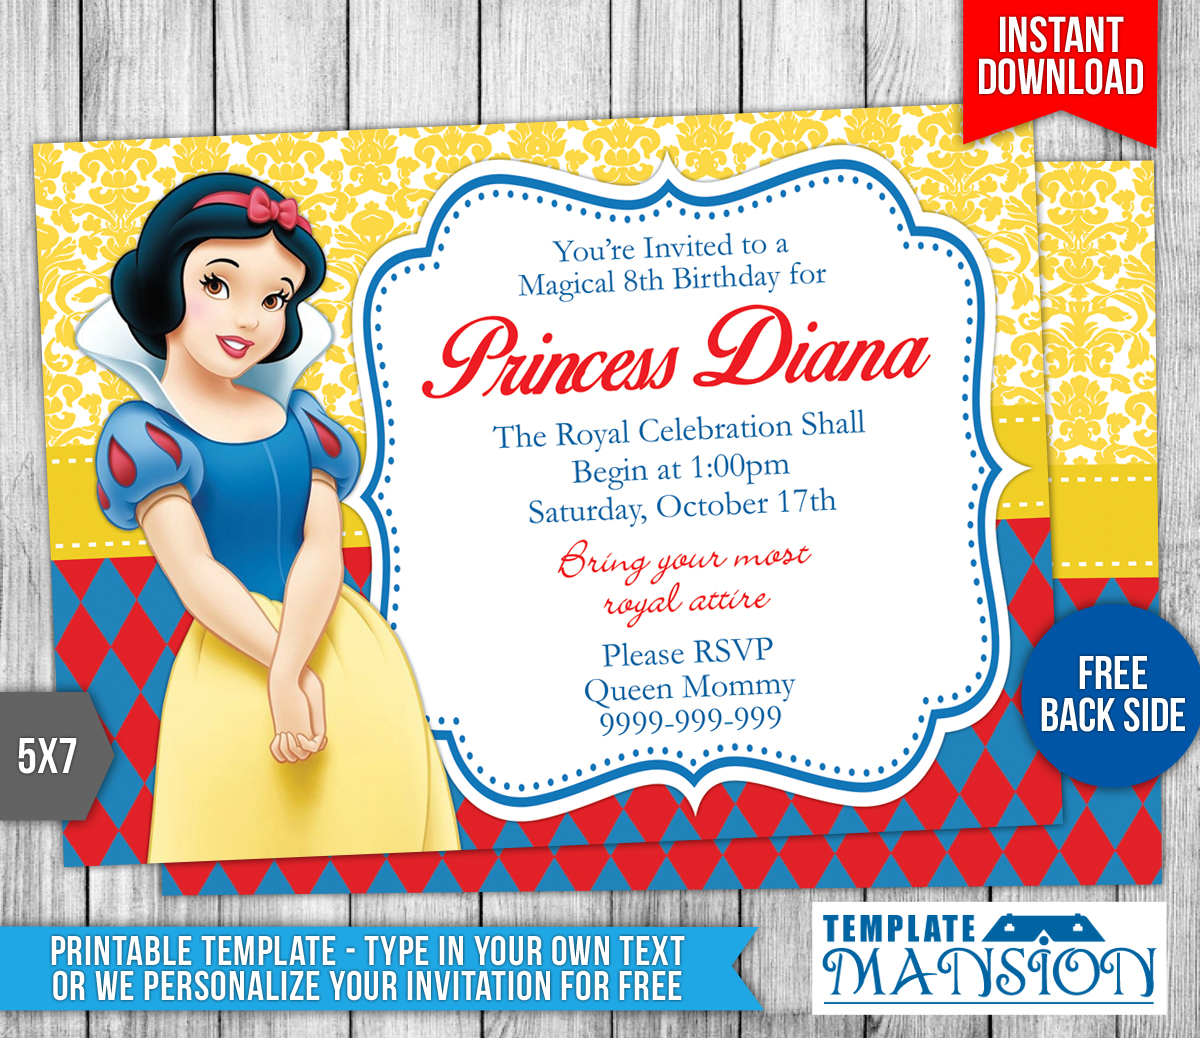 Snow White Birthday Invitation Template 3 By Templatemansion On